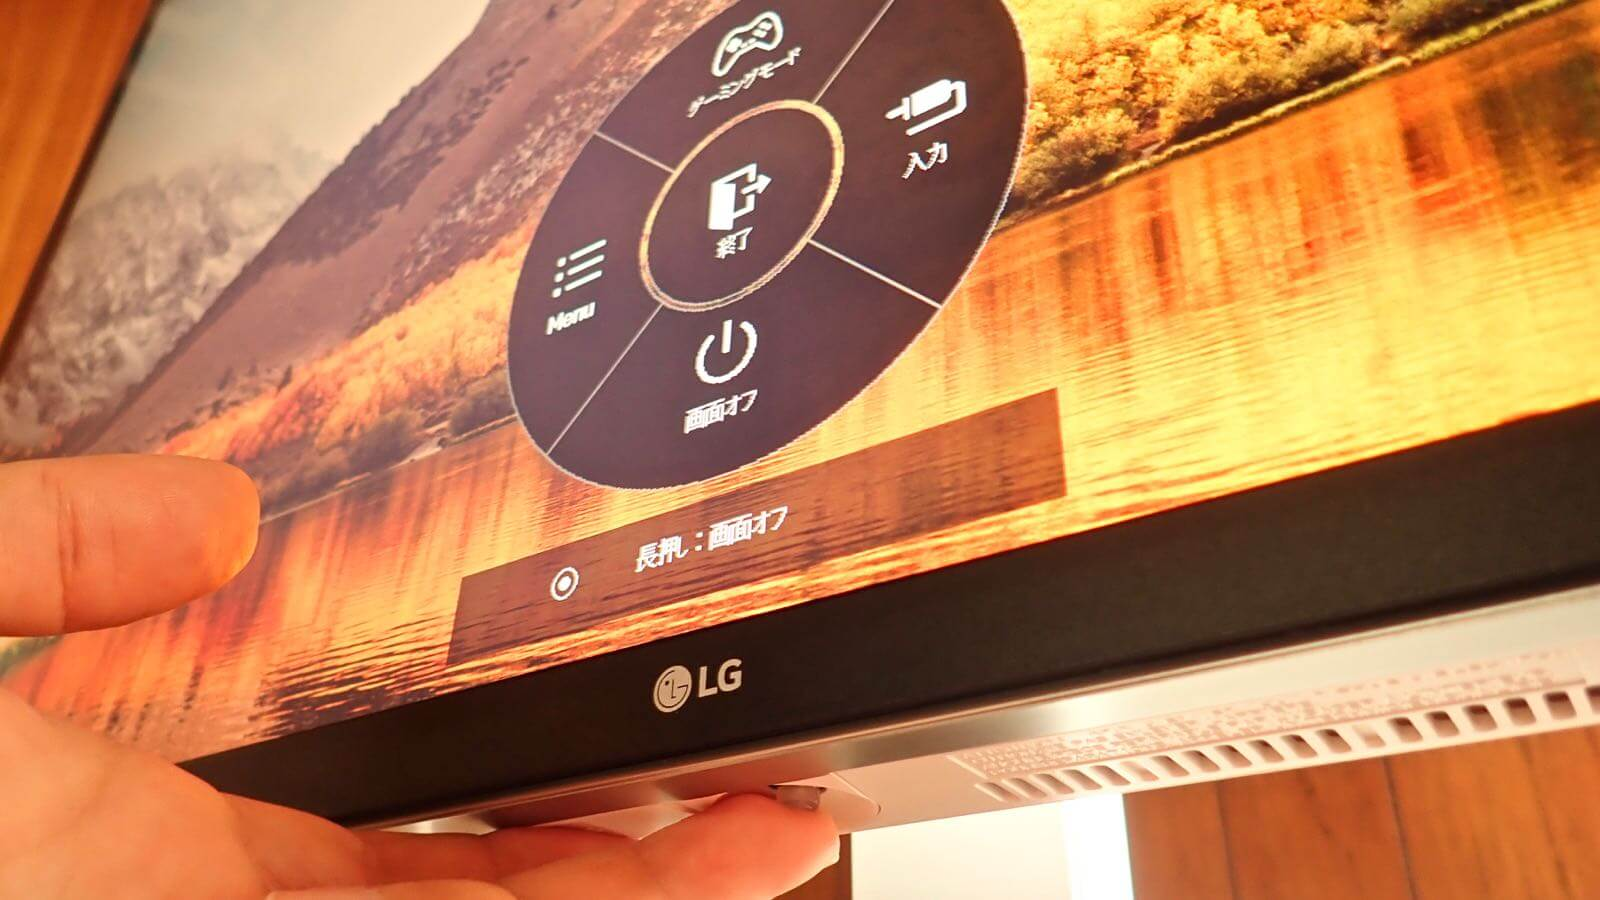 0203 LG 27UD 88  W  27 inch 4K monitor review 18